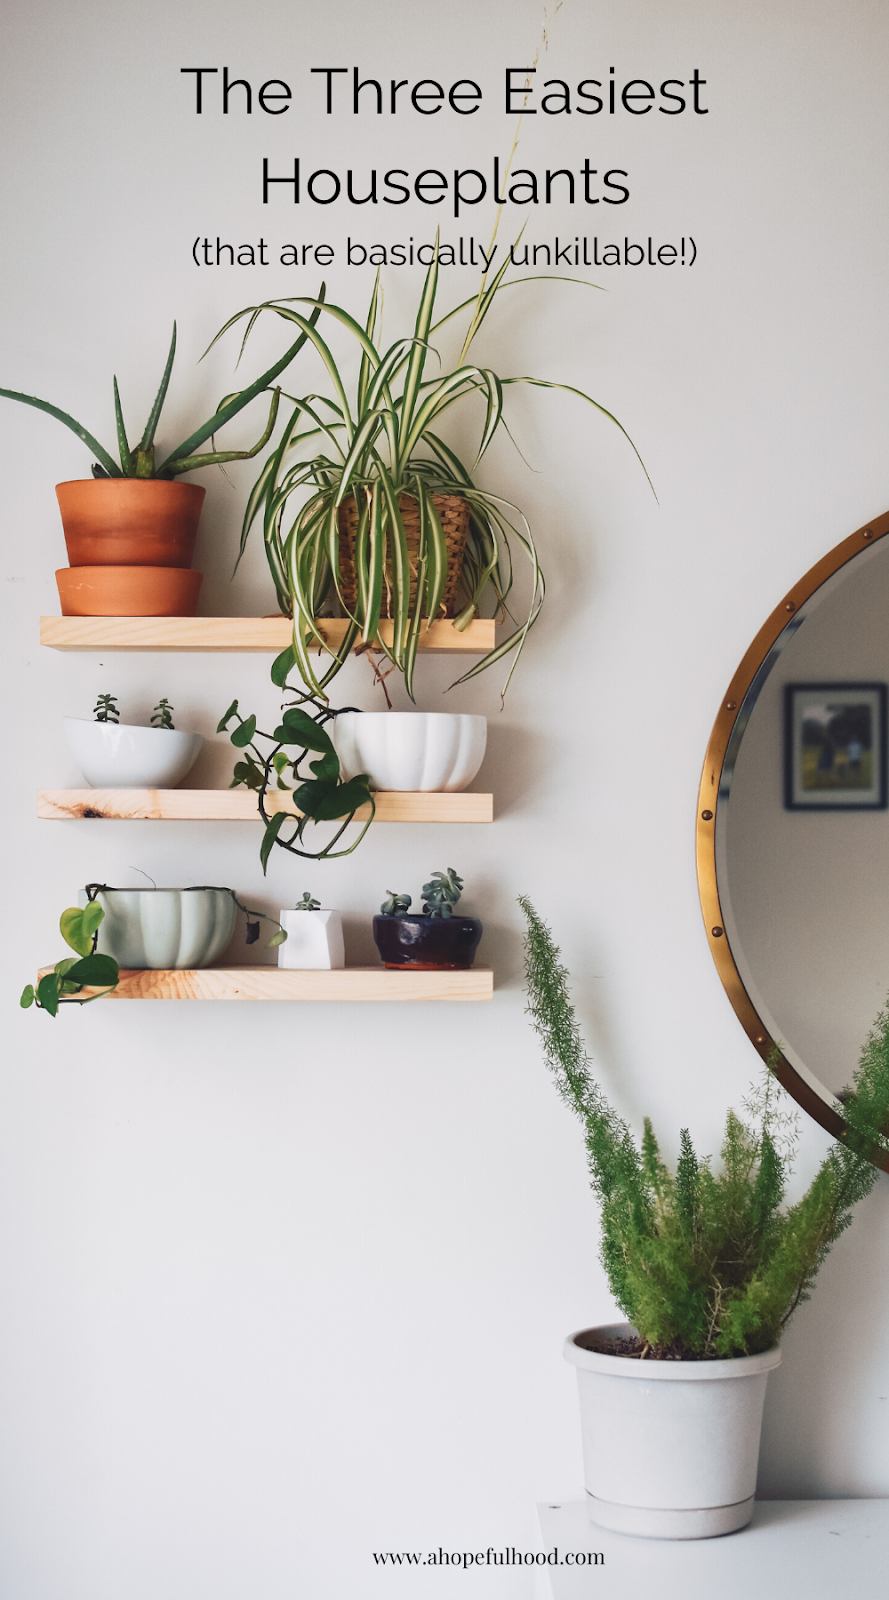 A beginner's guide to getting houseplants. These 3 easy plants are basically unkillable! via @ahopefulhood #indoorgardens #plants #houseplants